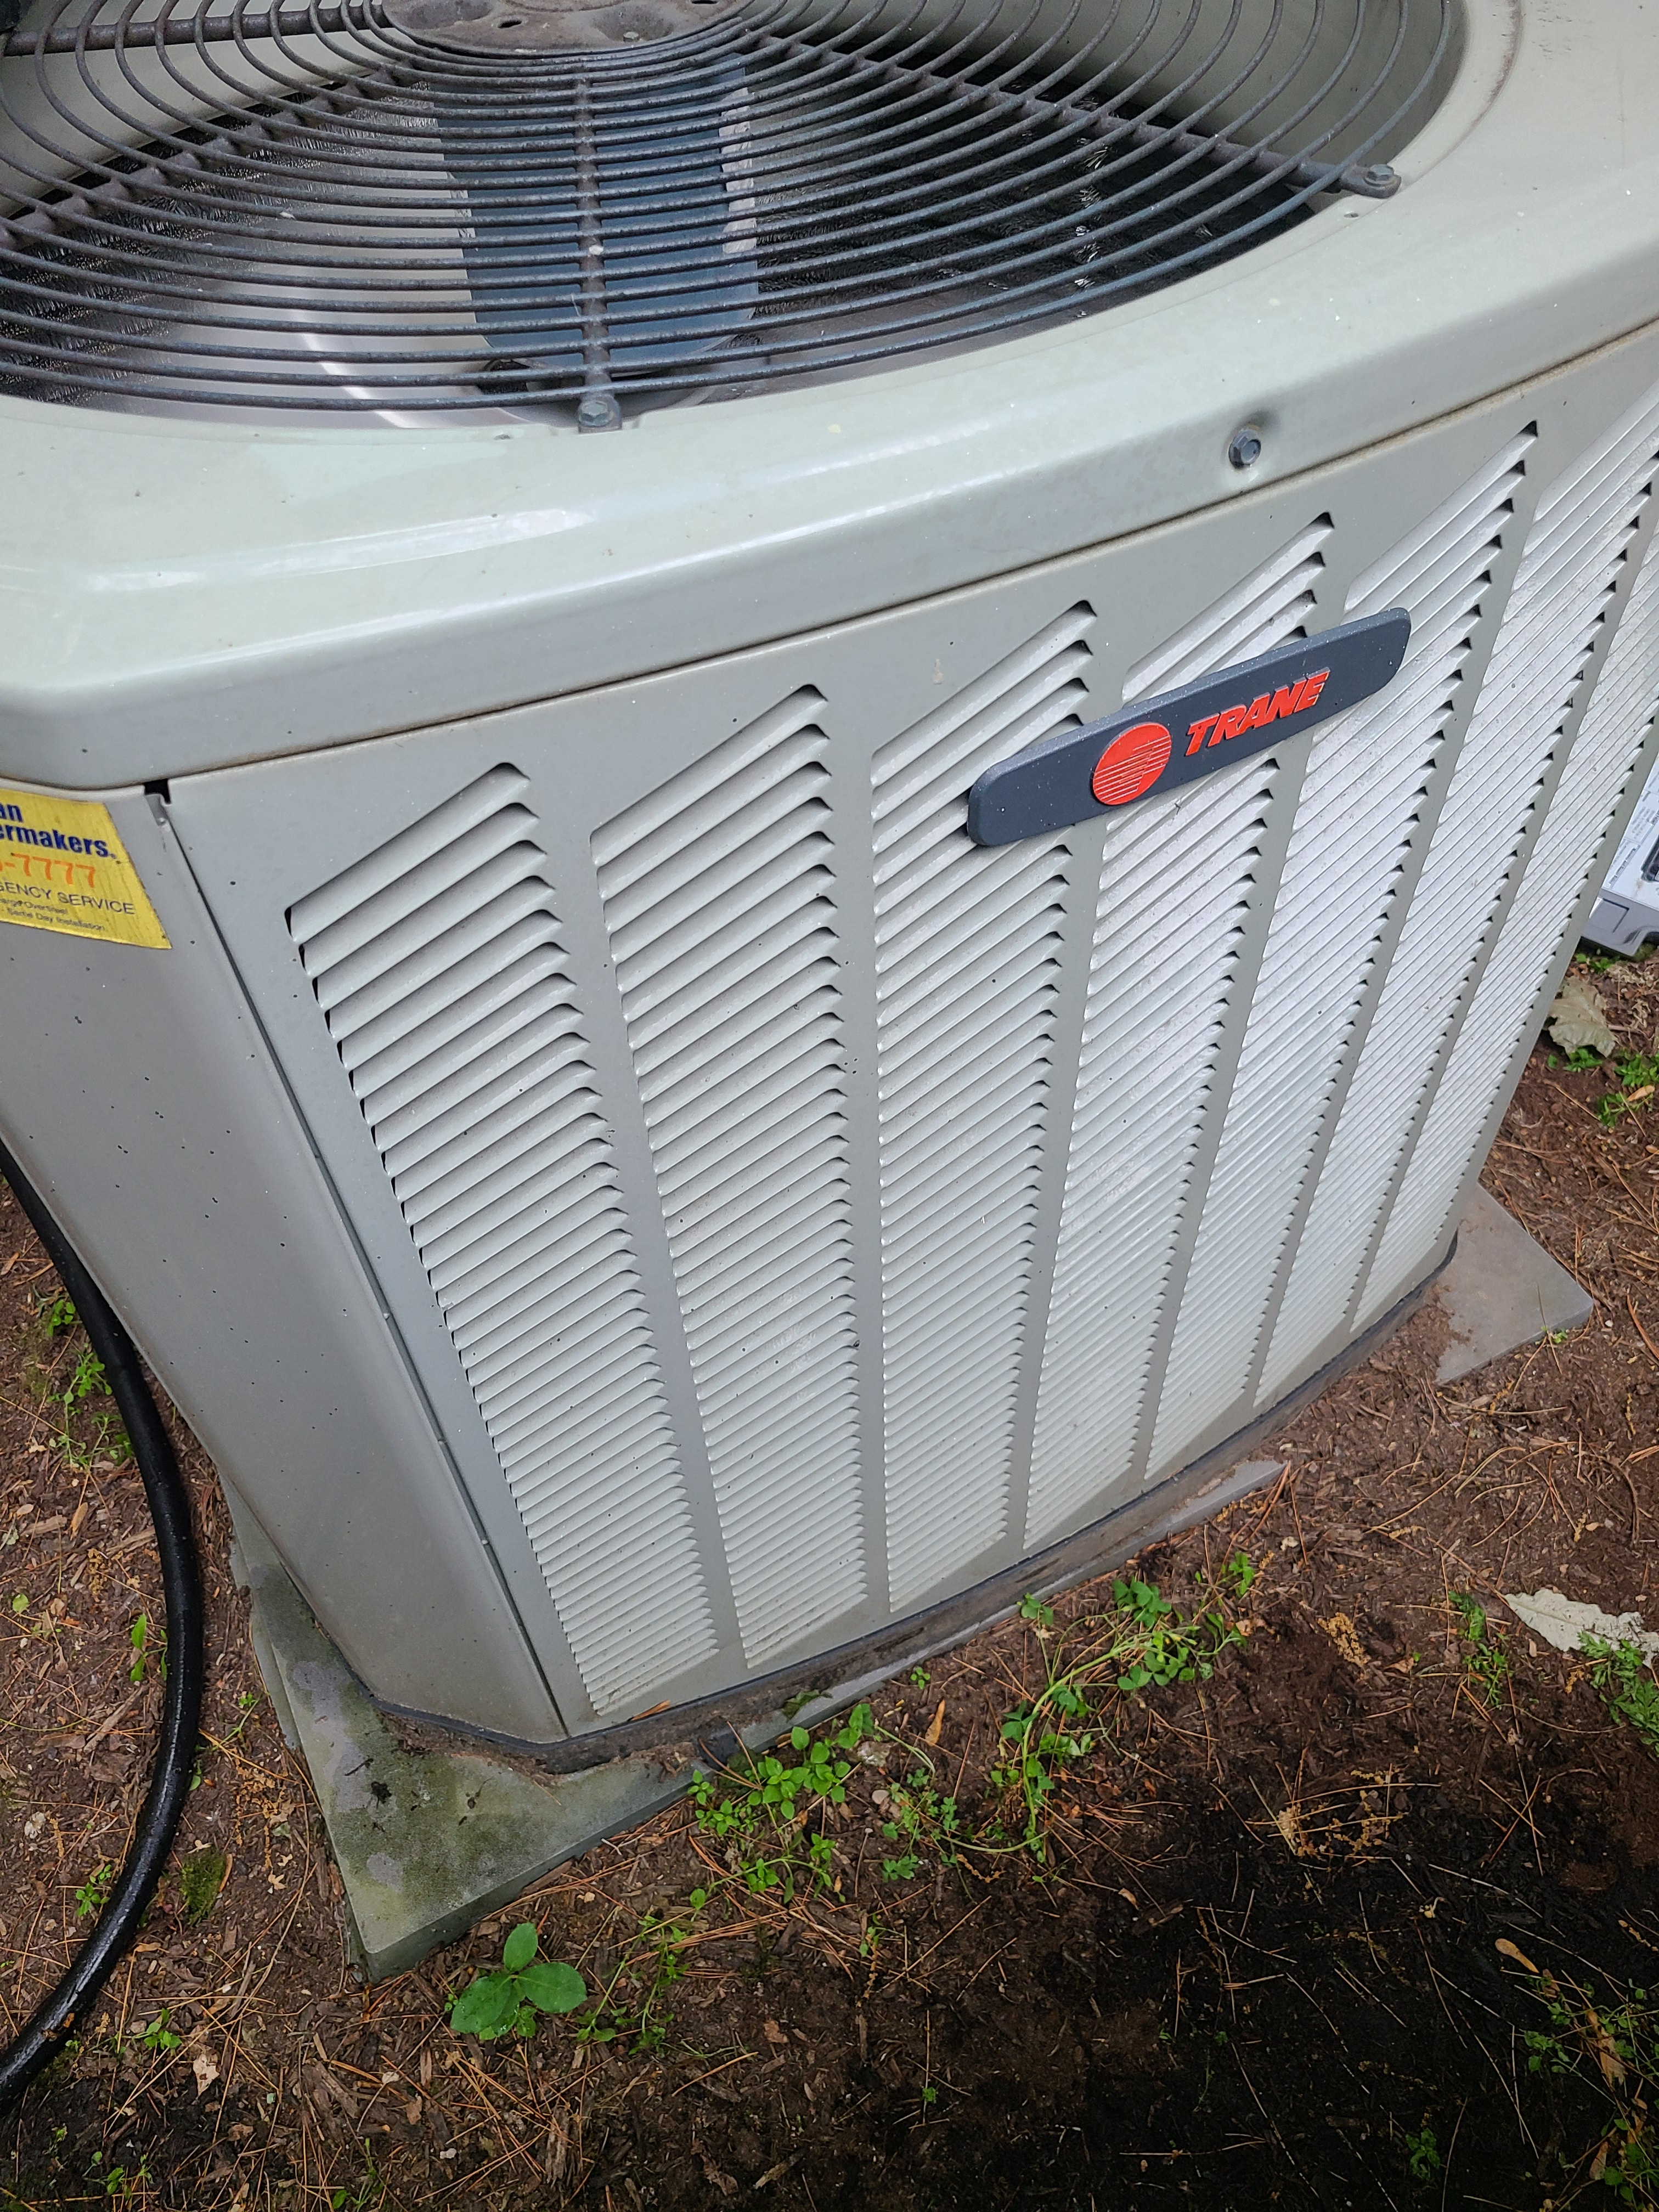 Trane air conditioner not cooling. Added refrigerant.